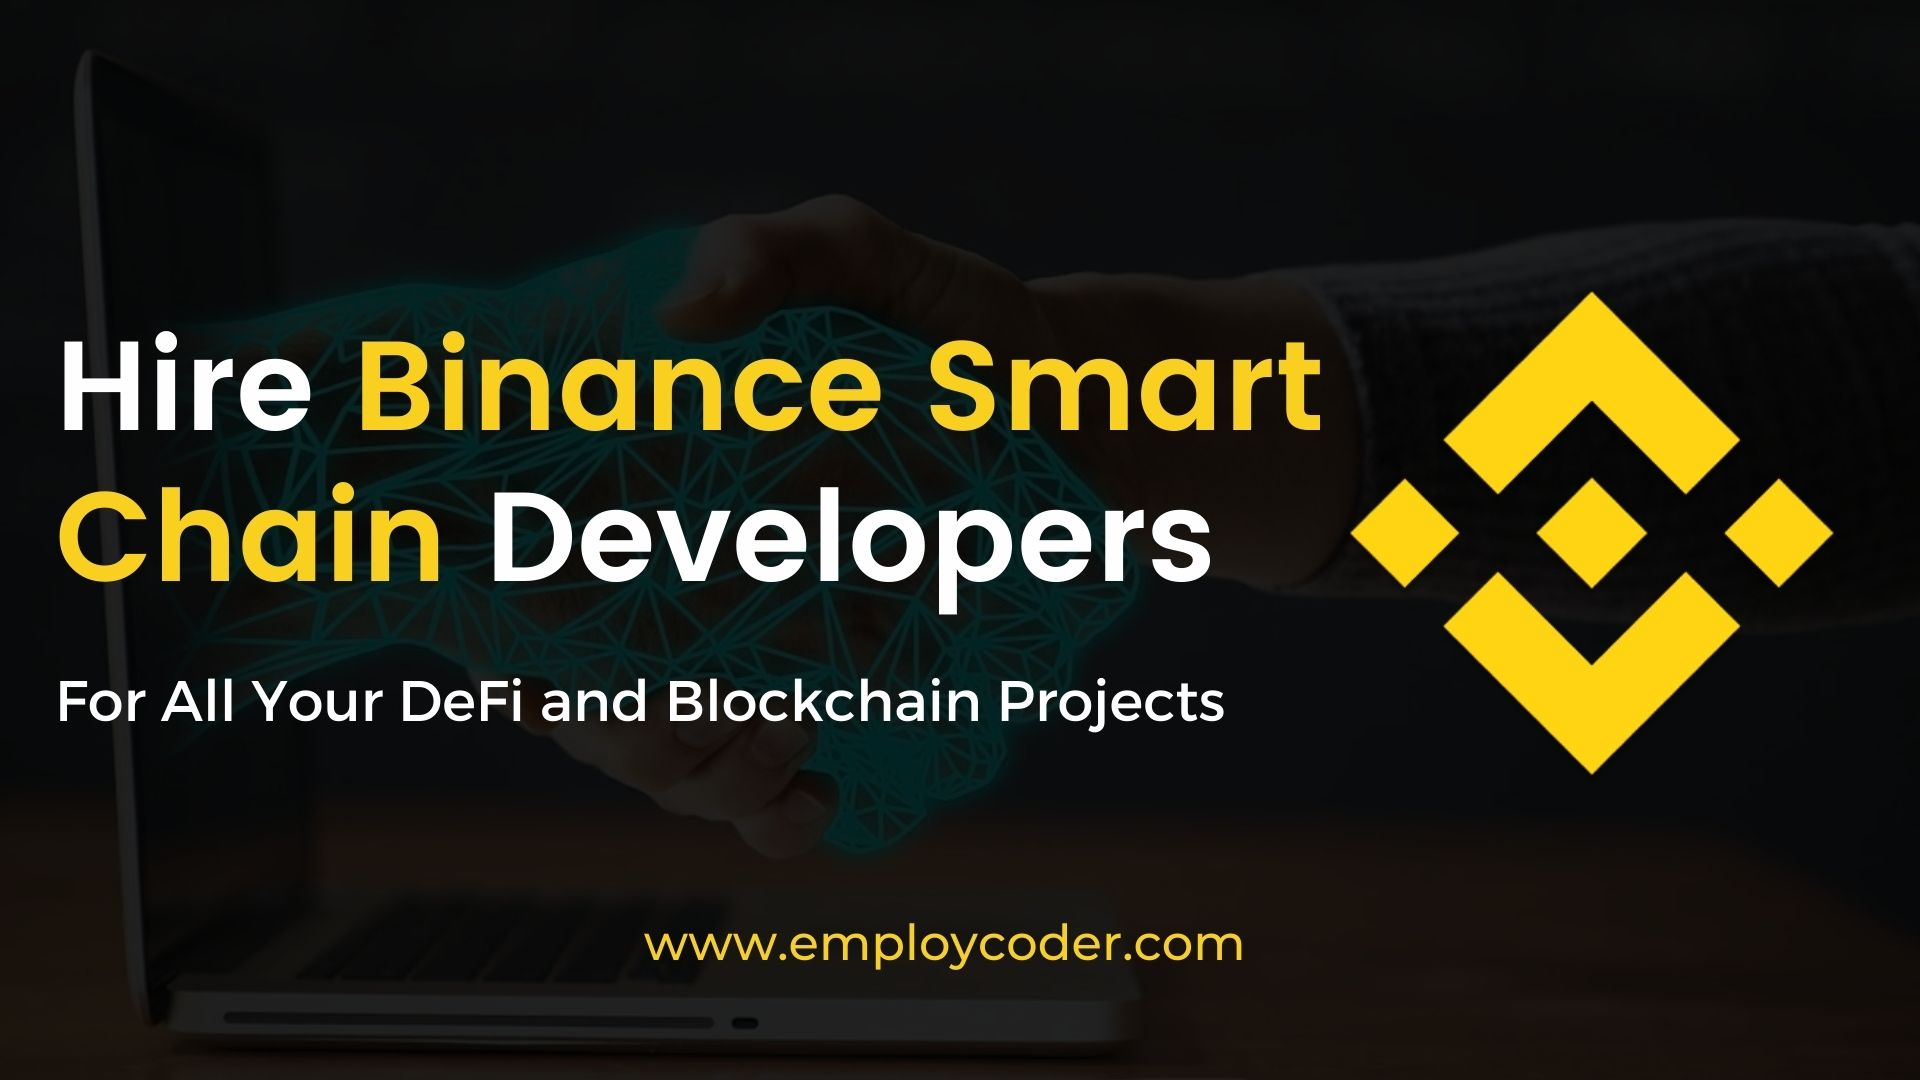 Hire Binance Smart Chain Developers To Create Efficient Smart Contracts For All Your DeFi and Blockchain Projects